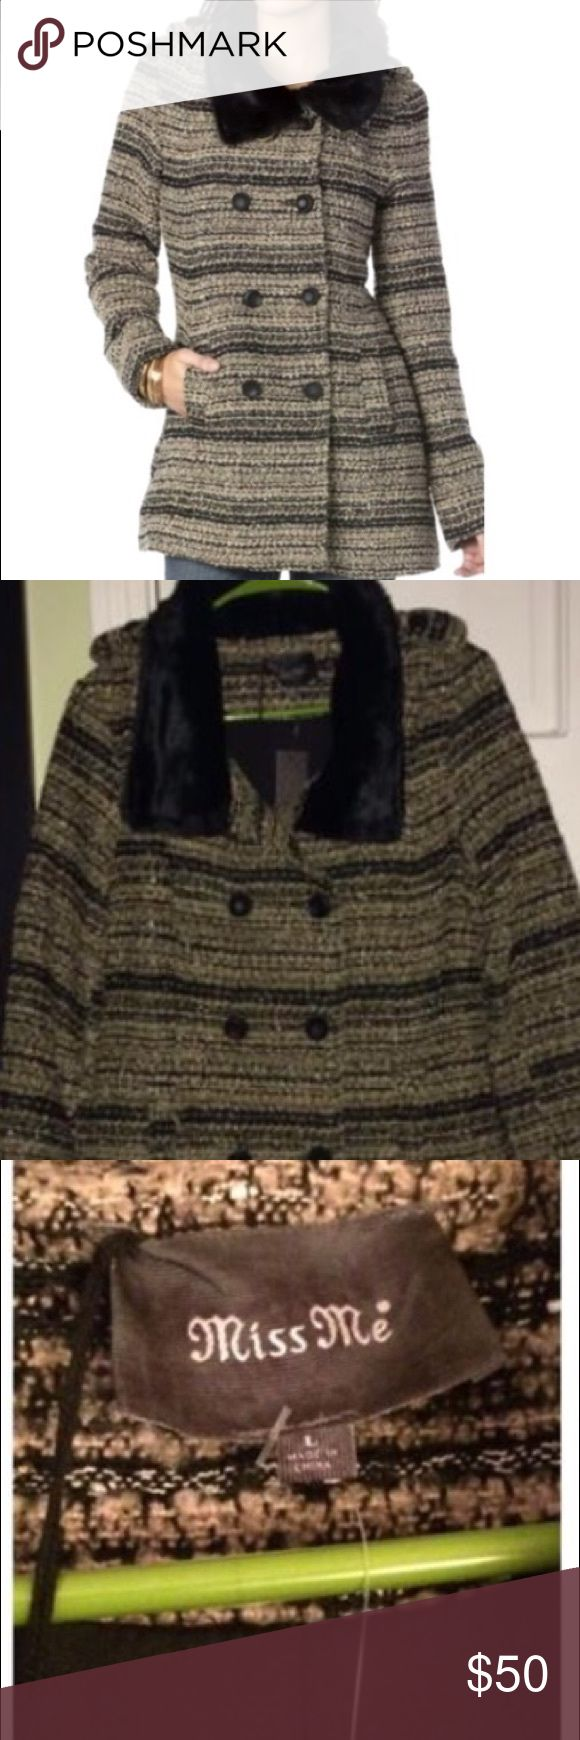 Miss Me Pea Coat NWT, size L. Beautiful, black and brown tweed coat with fur lined collar. NWT, Miss Me brand, size large, double breasted buttons. Miss Me Jackets & Coats Pea Coats